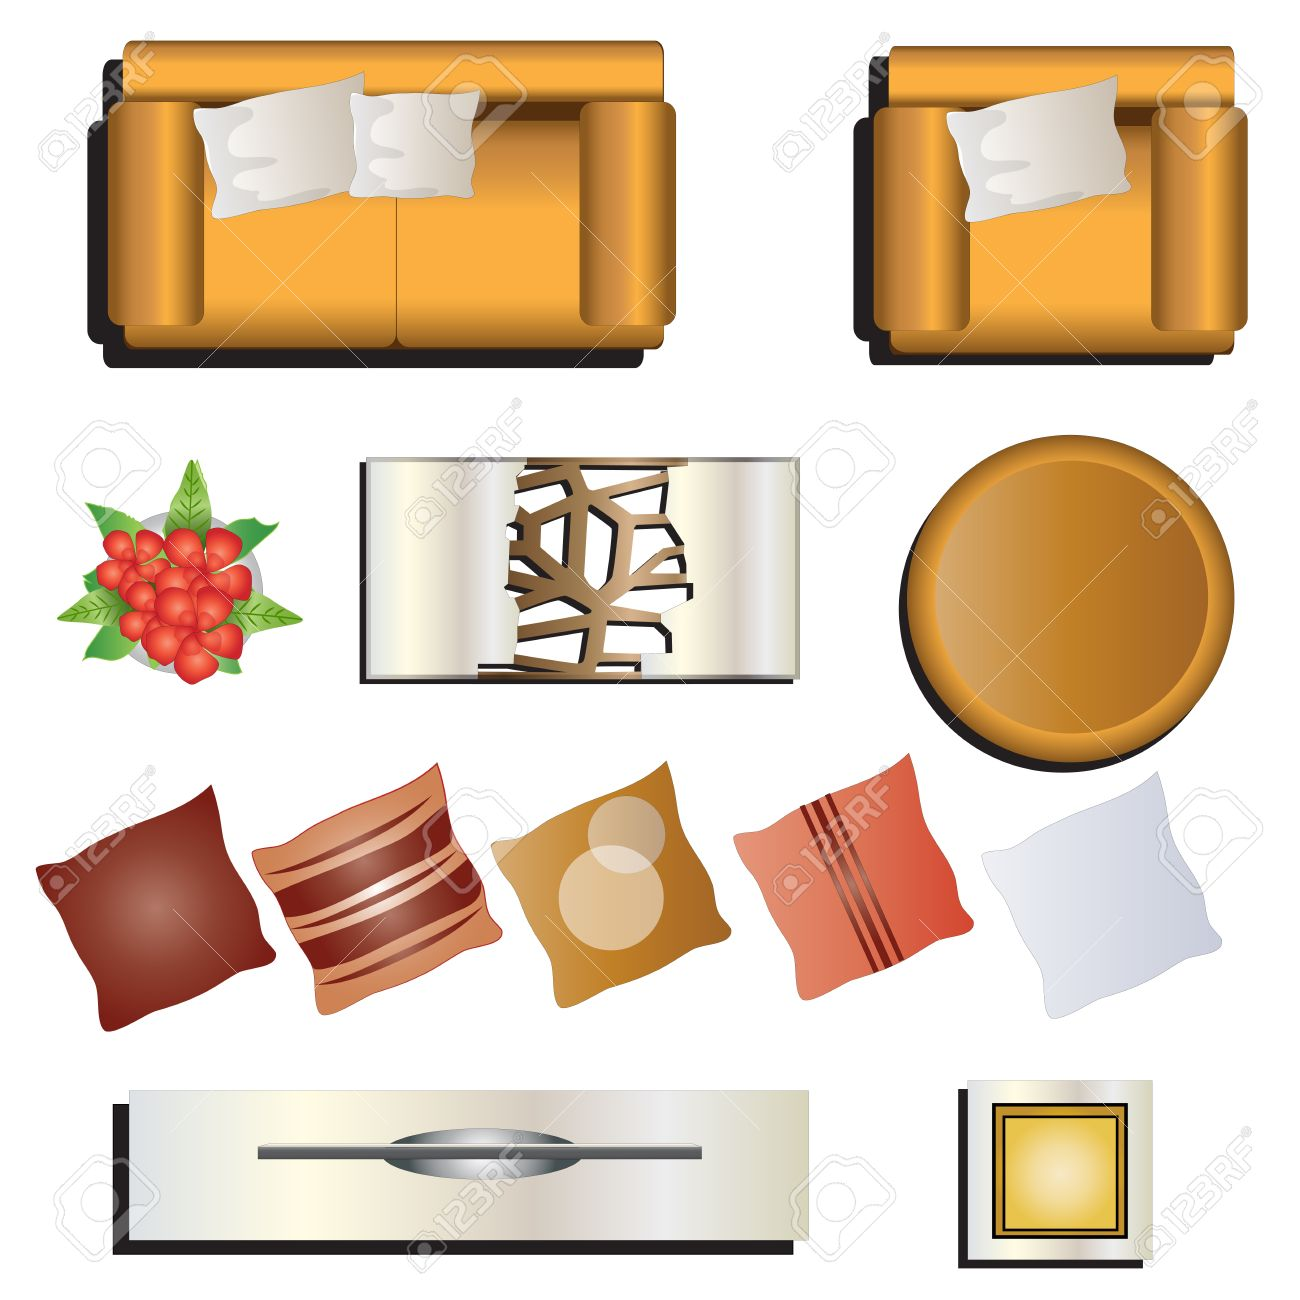 Furniture top view images - Living Room Furniture Top View Set 7 For Interior Vector Illustration Stock Vector 48755775